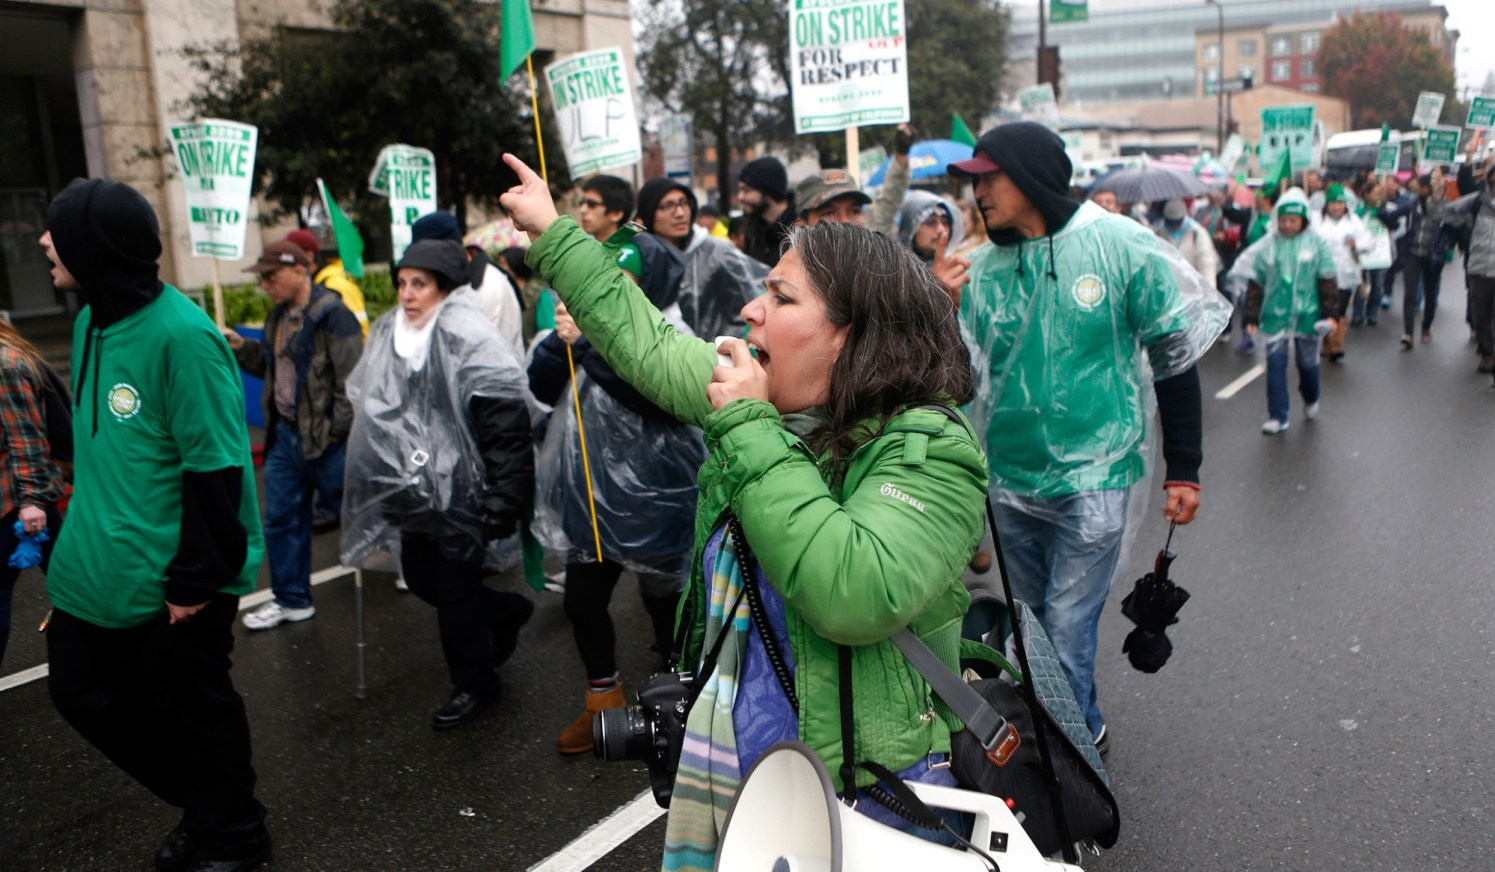 afscme-strike-berkeley-2013